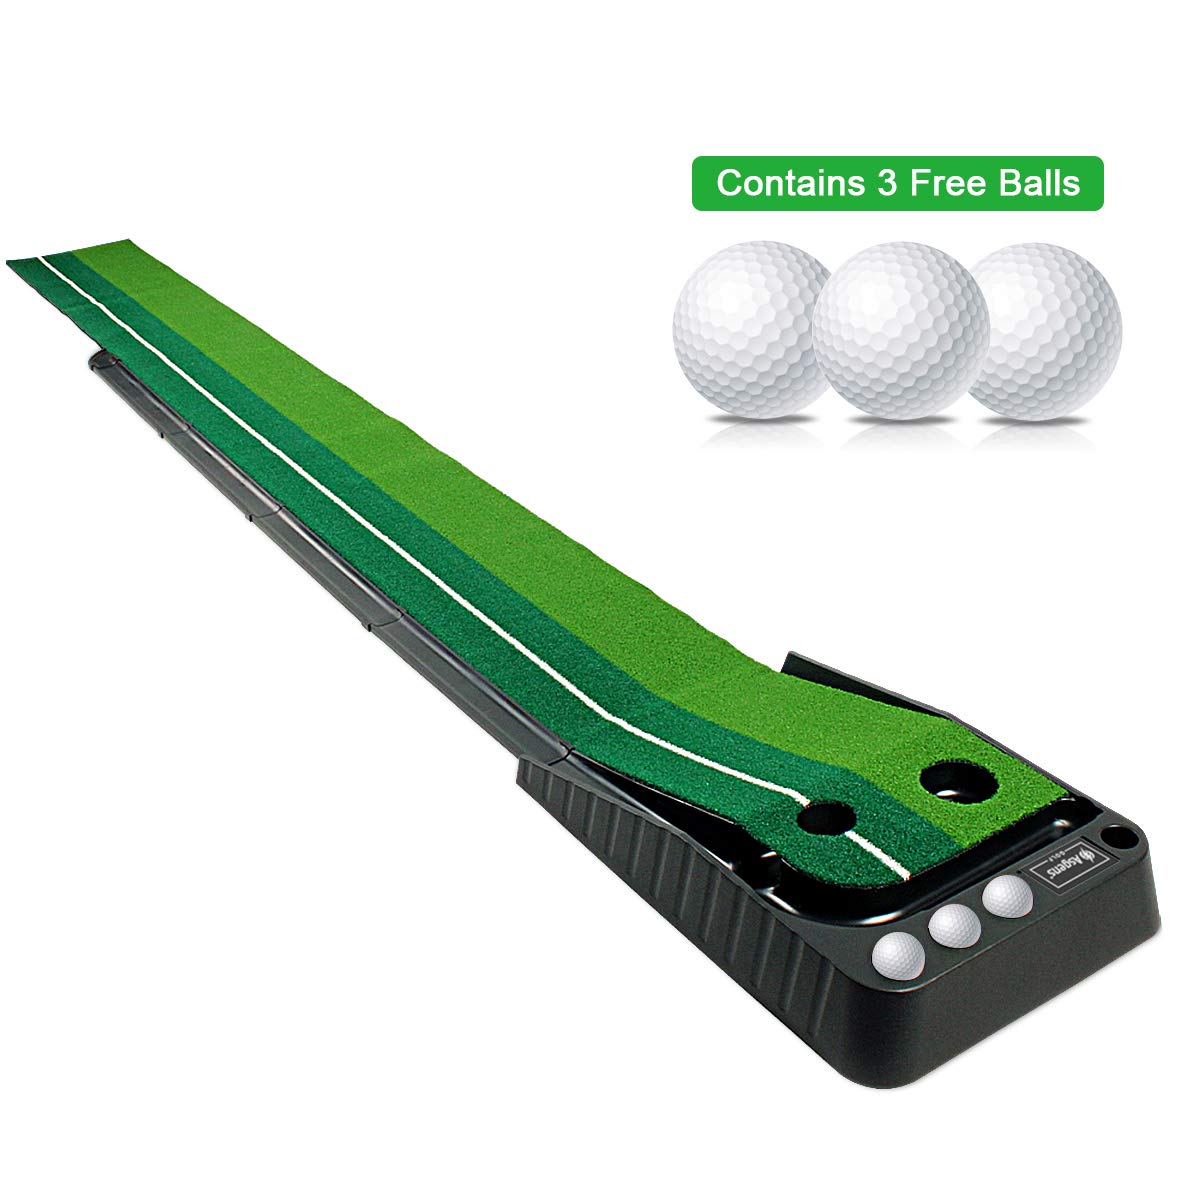 Asgens Golf Putting Green, Indoor Outdoor Golf Auto Return Putting Mat, Dual-Track ProEdge Indoor Putting Trainer – Extra Long 9.8 Feet Mat, 2 Holes 2 Sizes, Gravity Ball Return